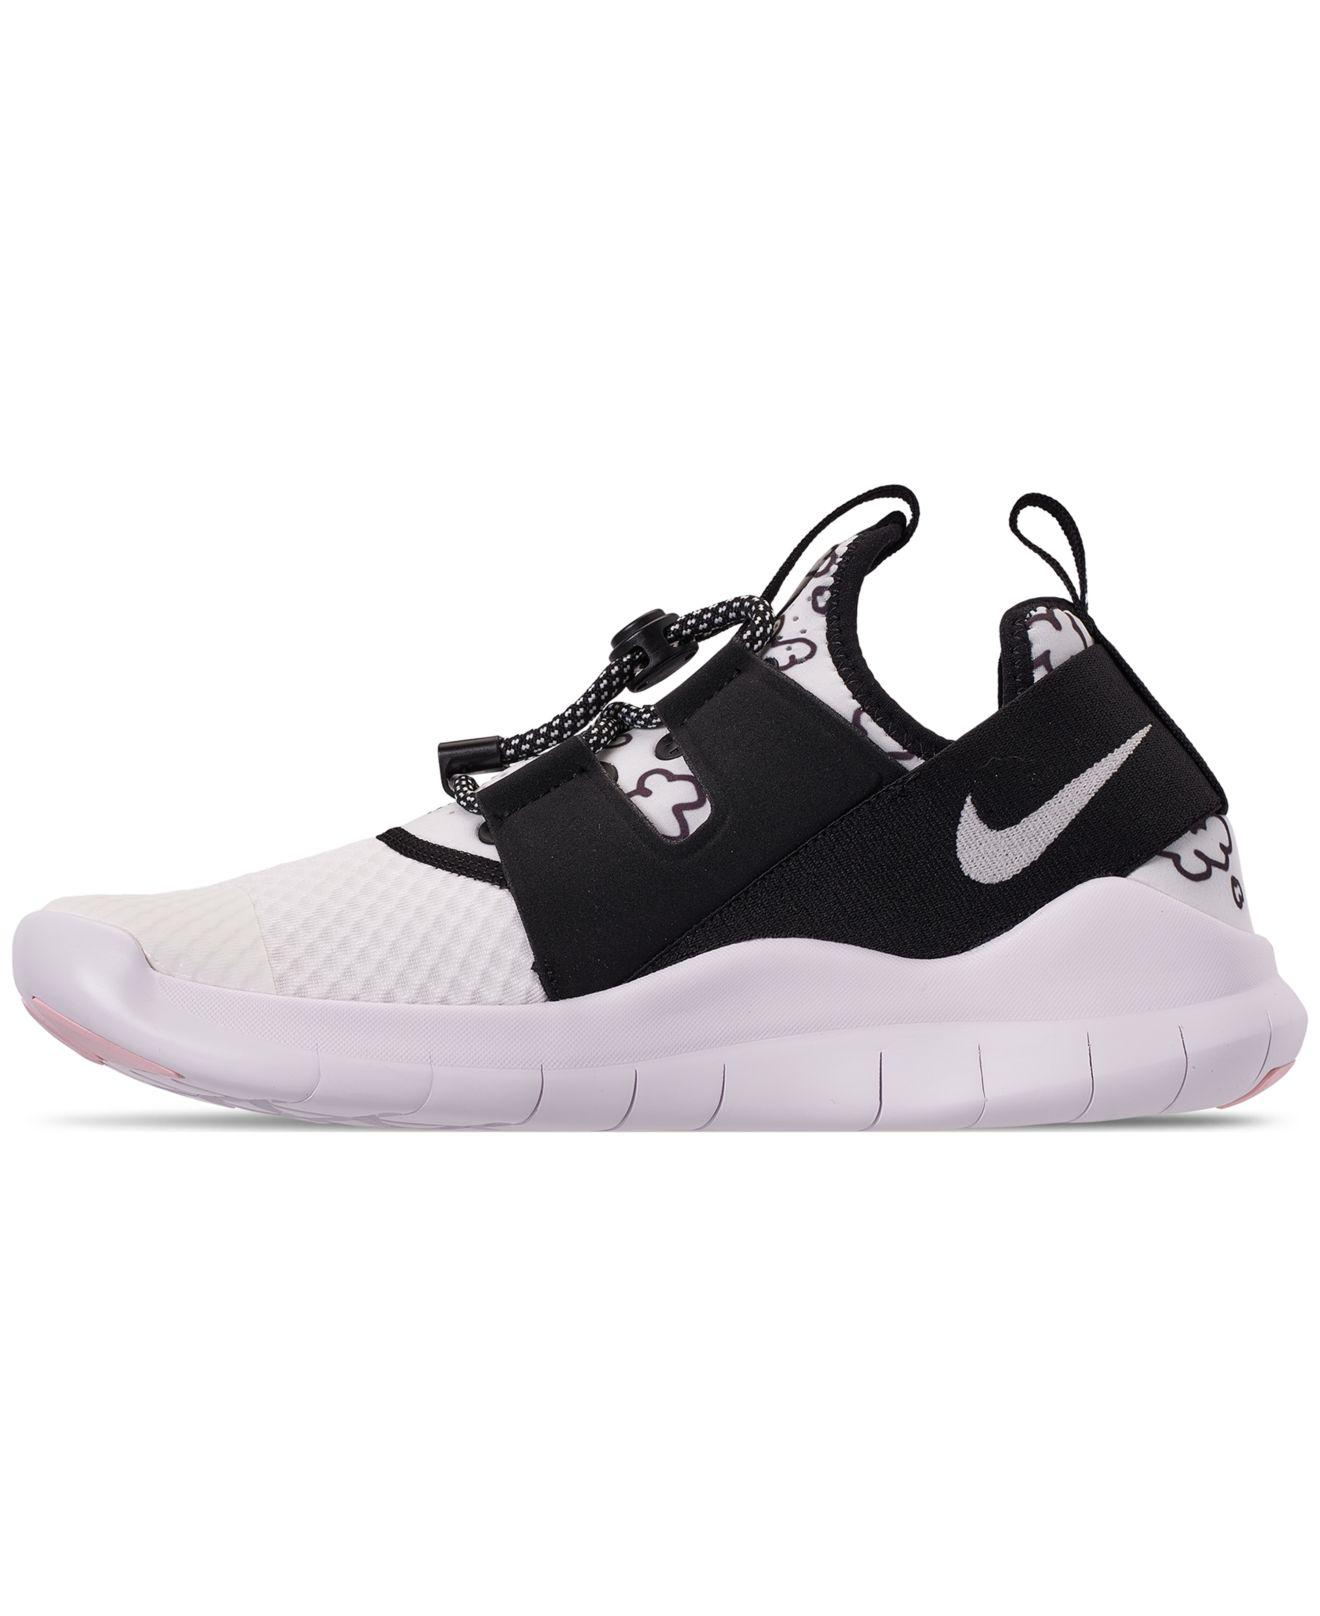 bfe292bca84e7 Lyst - Nike Free Rn Commuter 2018 As Running Sneakers From Finish Line in Black  for Men